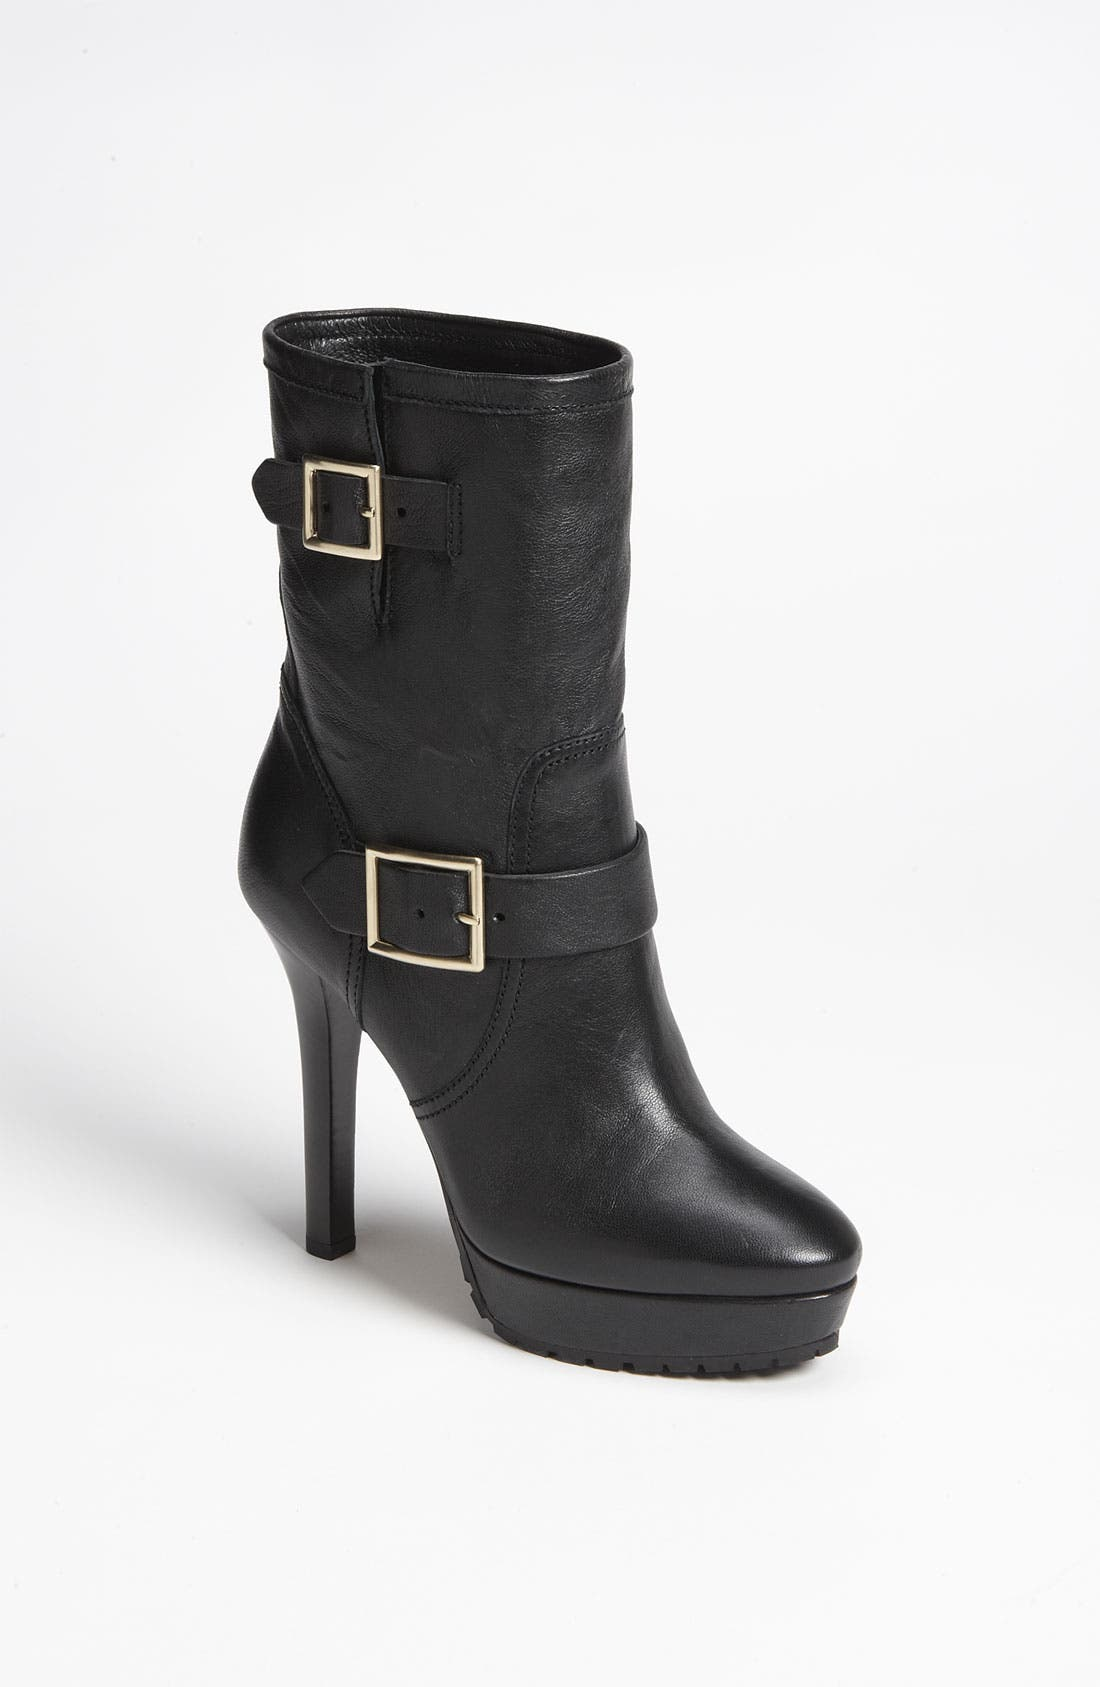 Main Image - Jimmy Choo 'Dylan' Biker Mid Boot